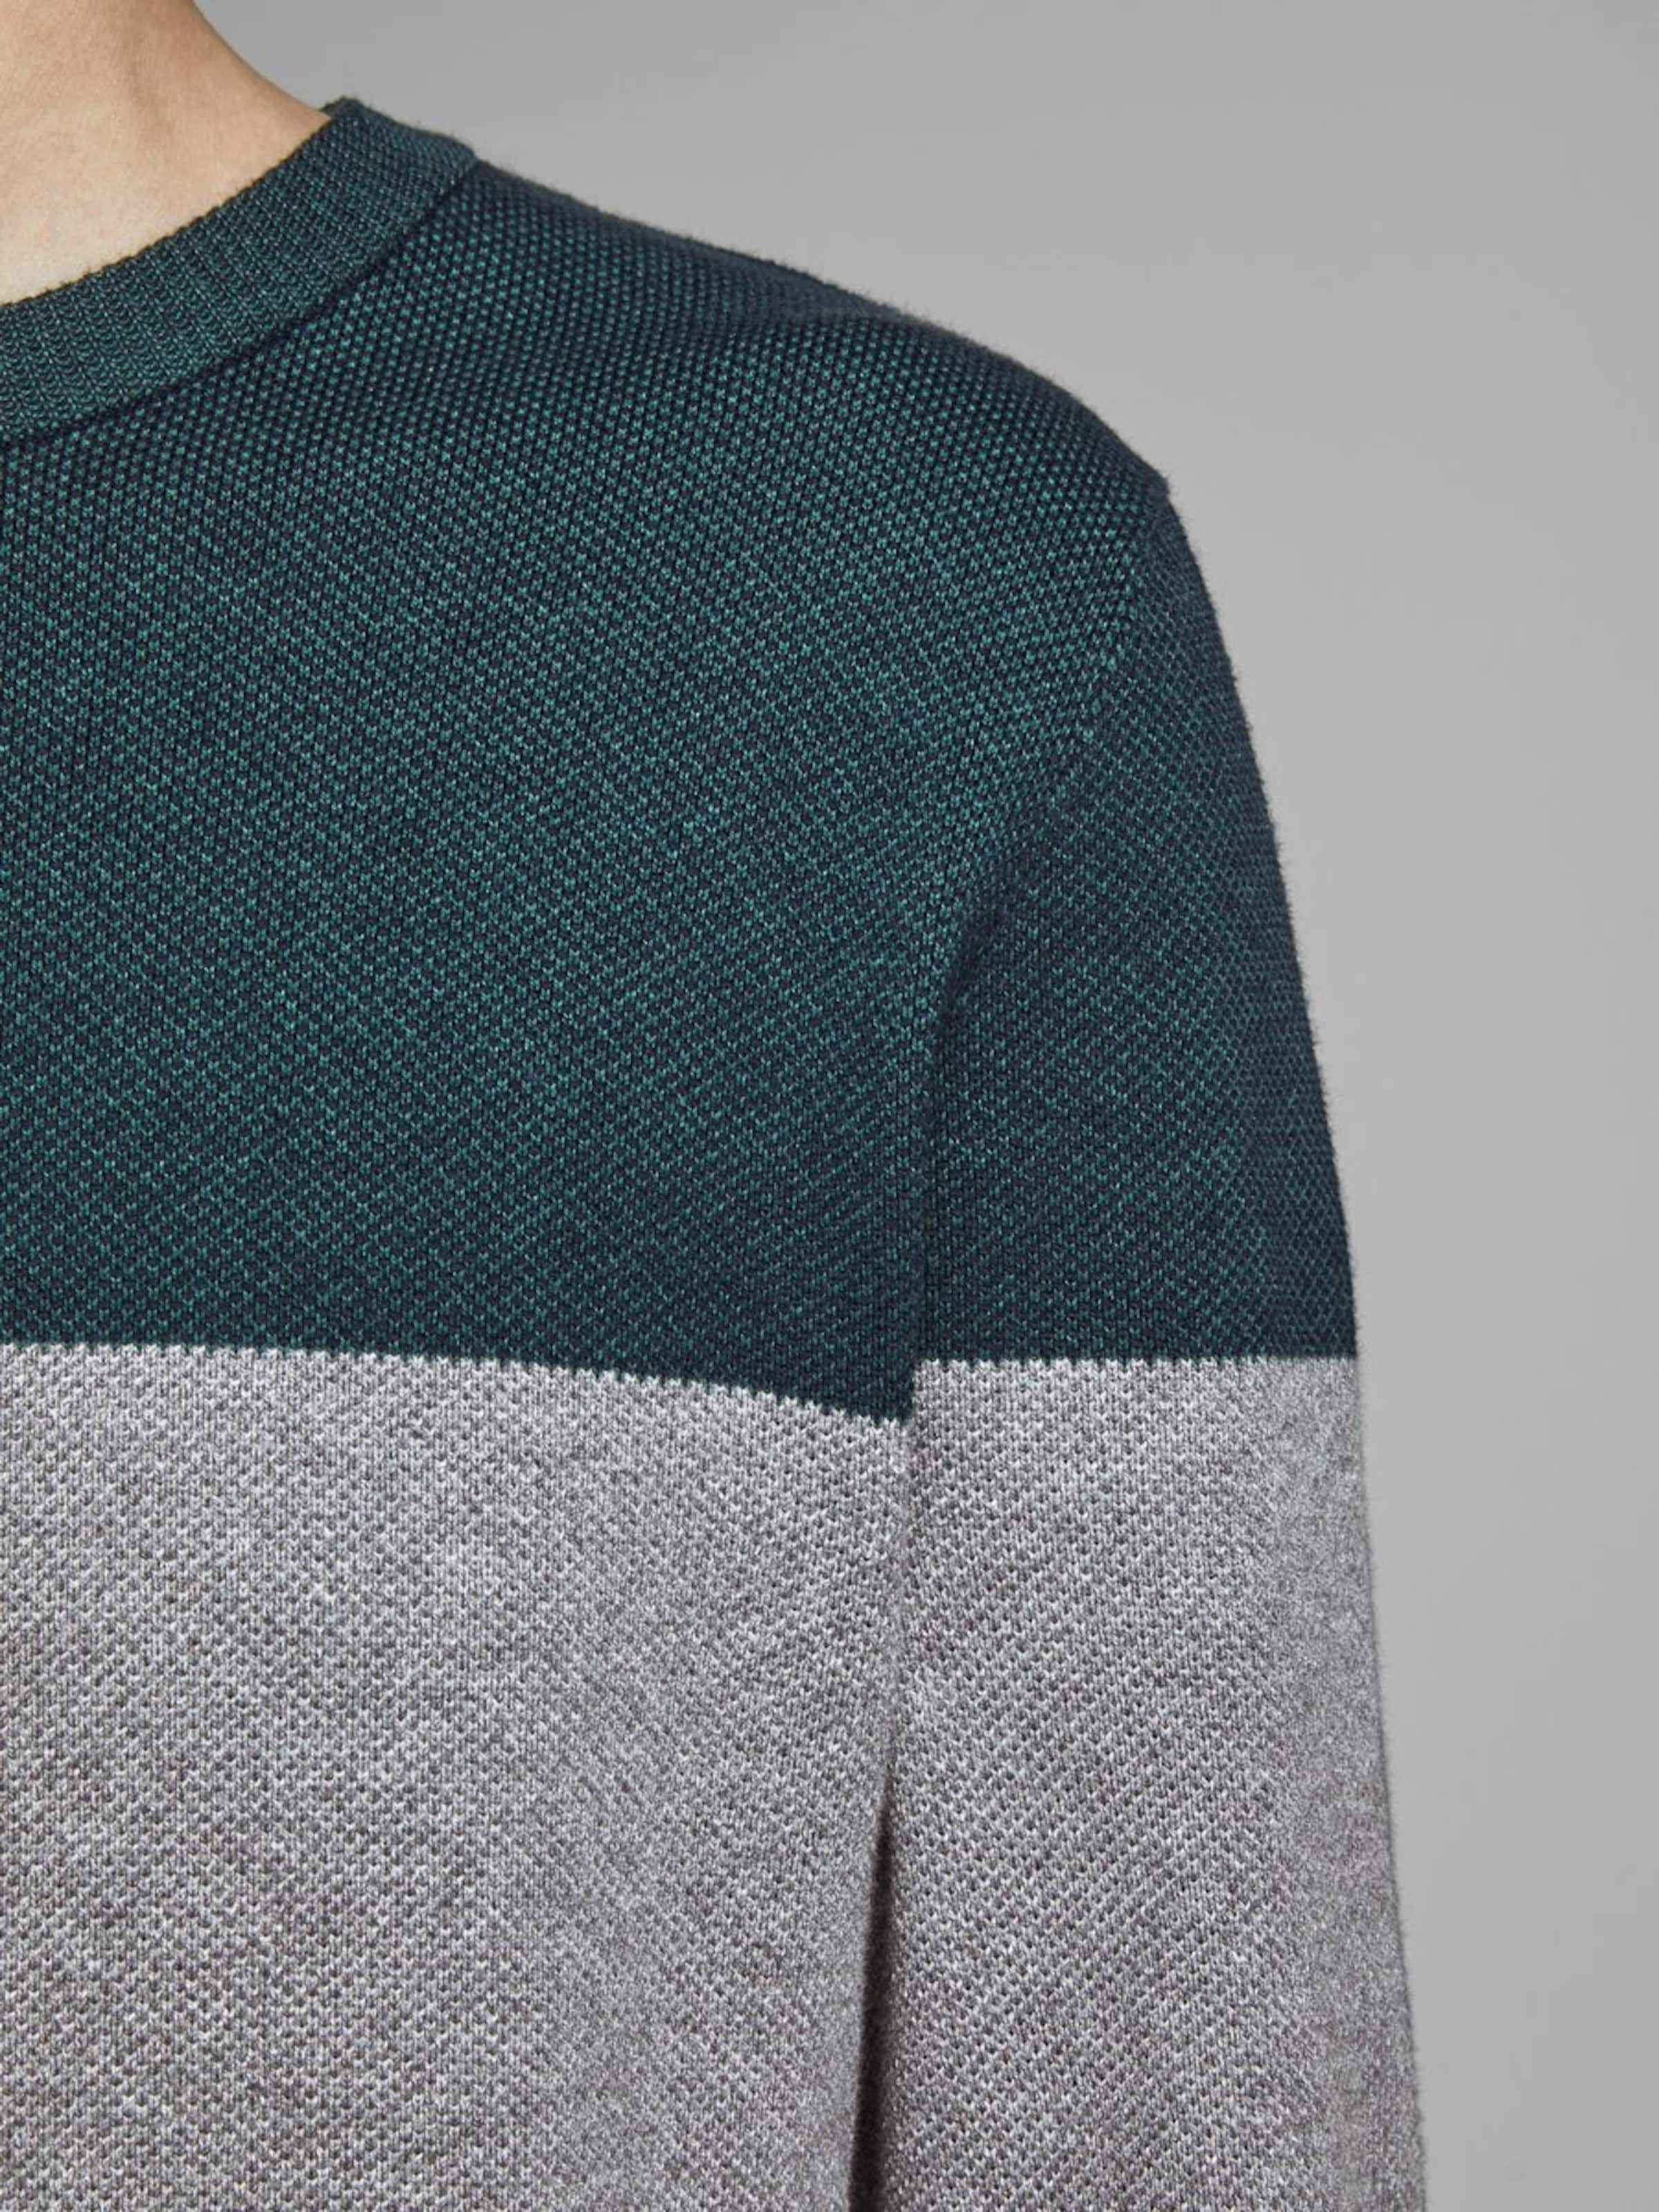 Mischfarben Jones Colourblocking Strickpullover In Jackamp; vm8nN0Ow